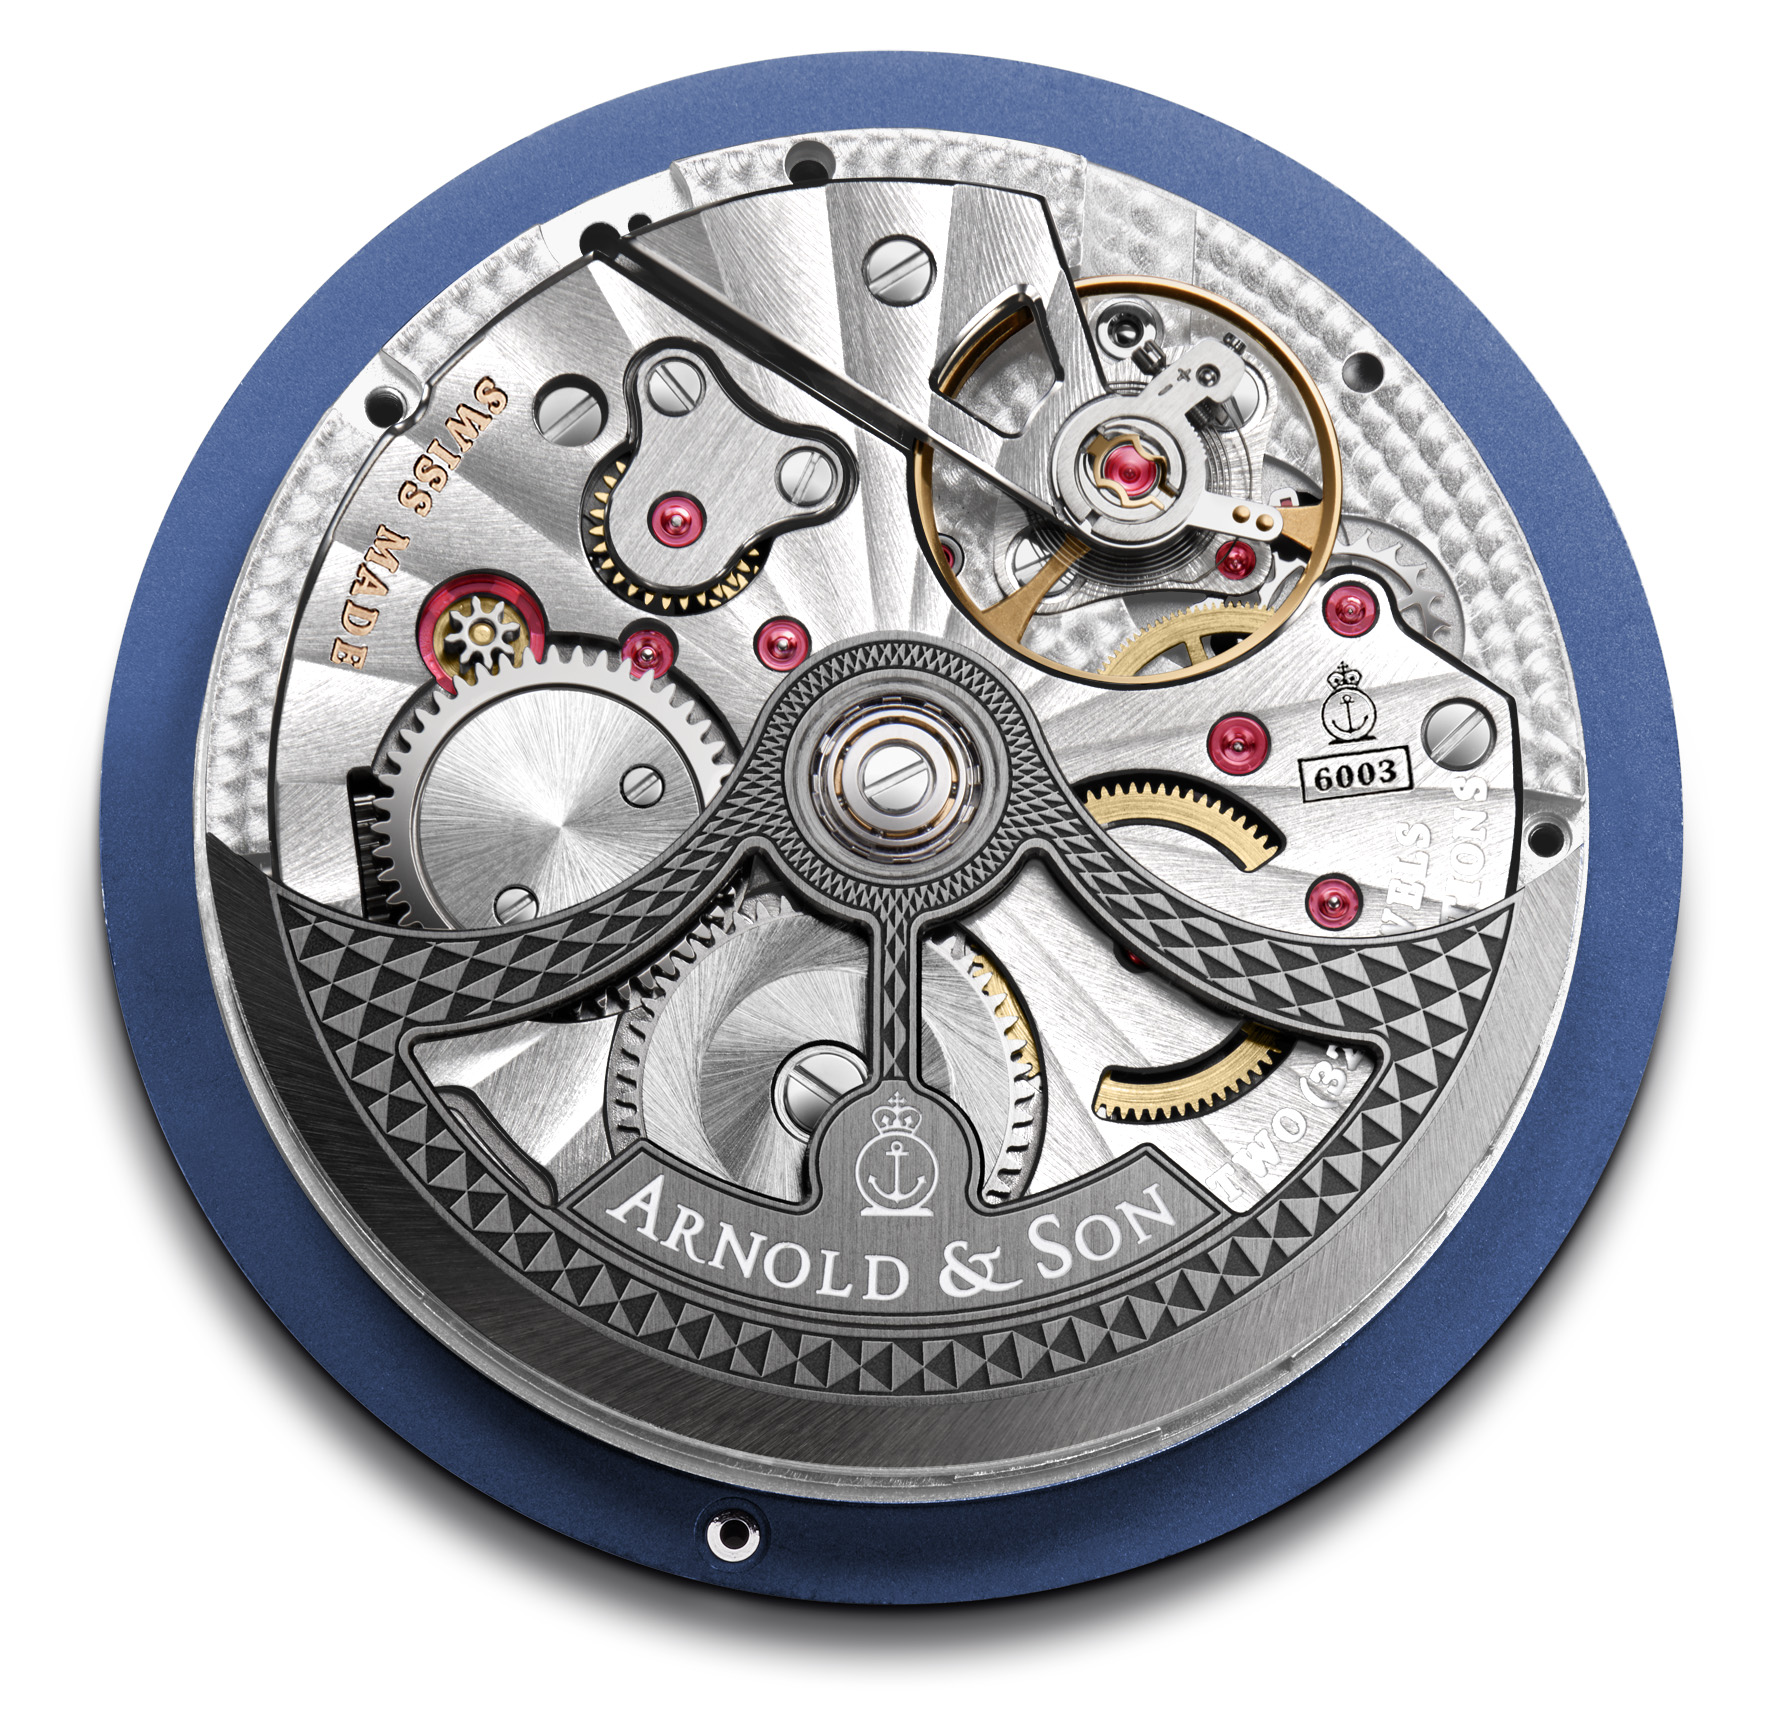 Arnold & Son DSTB Stainless Steel - blue_caliber_back_hr.jpg